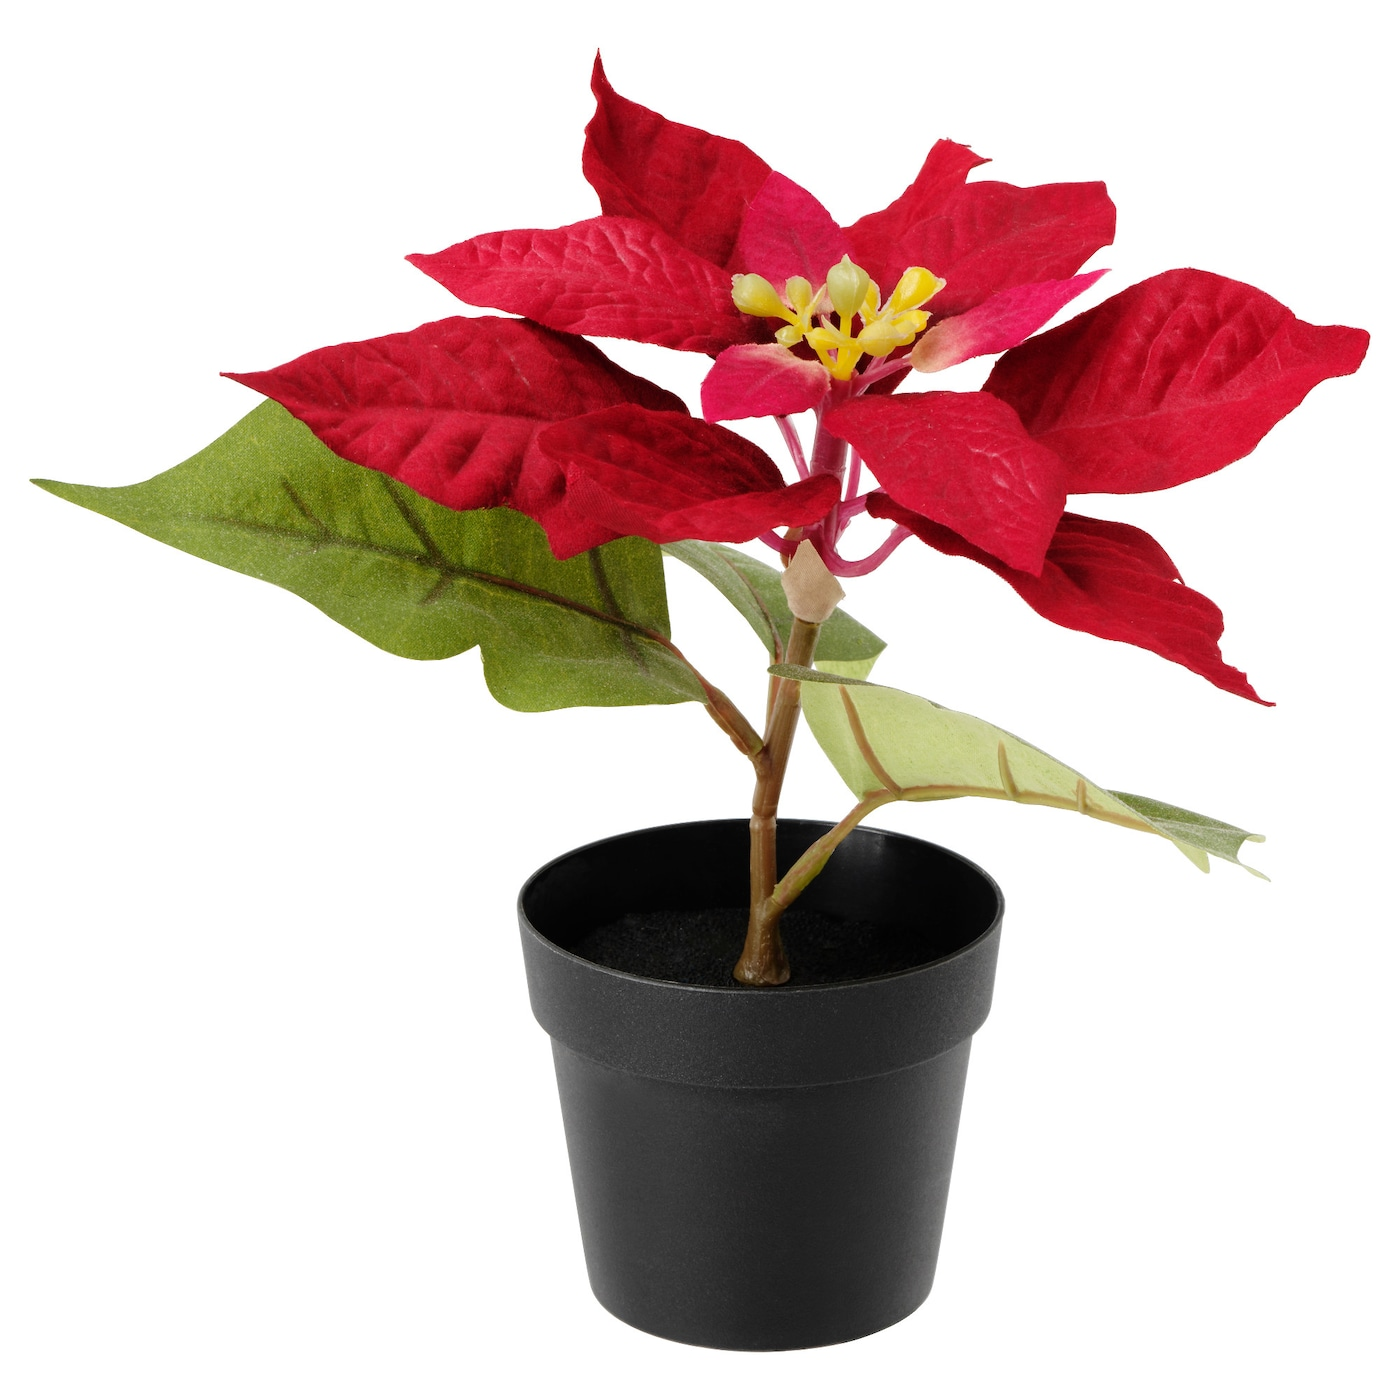 Fejka Artificial Potted Plant Poinsettia Red 9 Cm Ikea